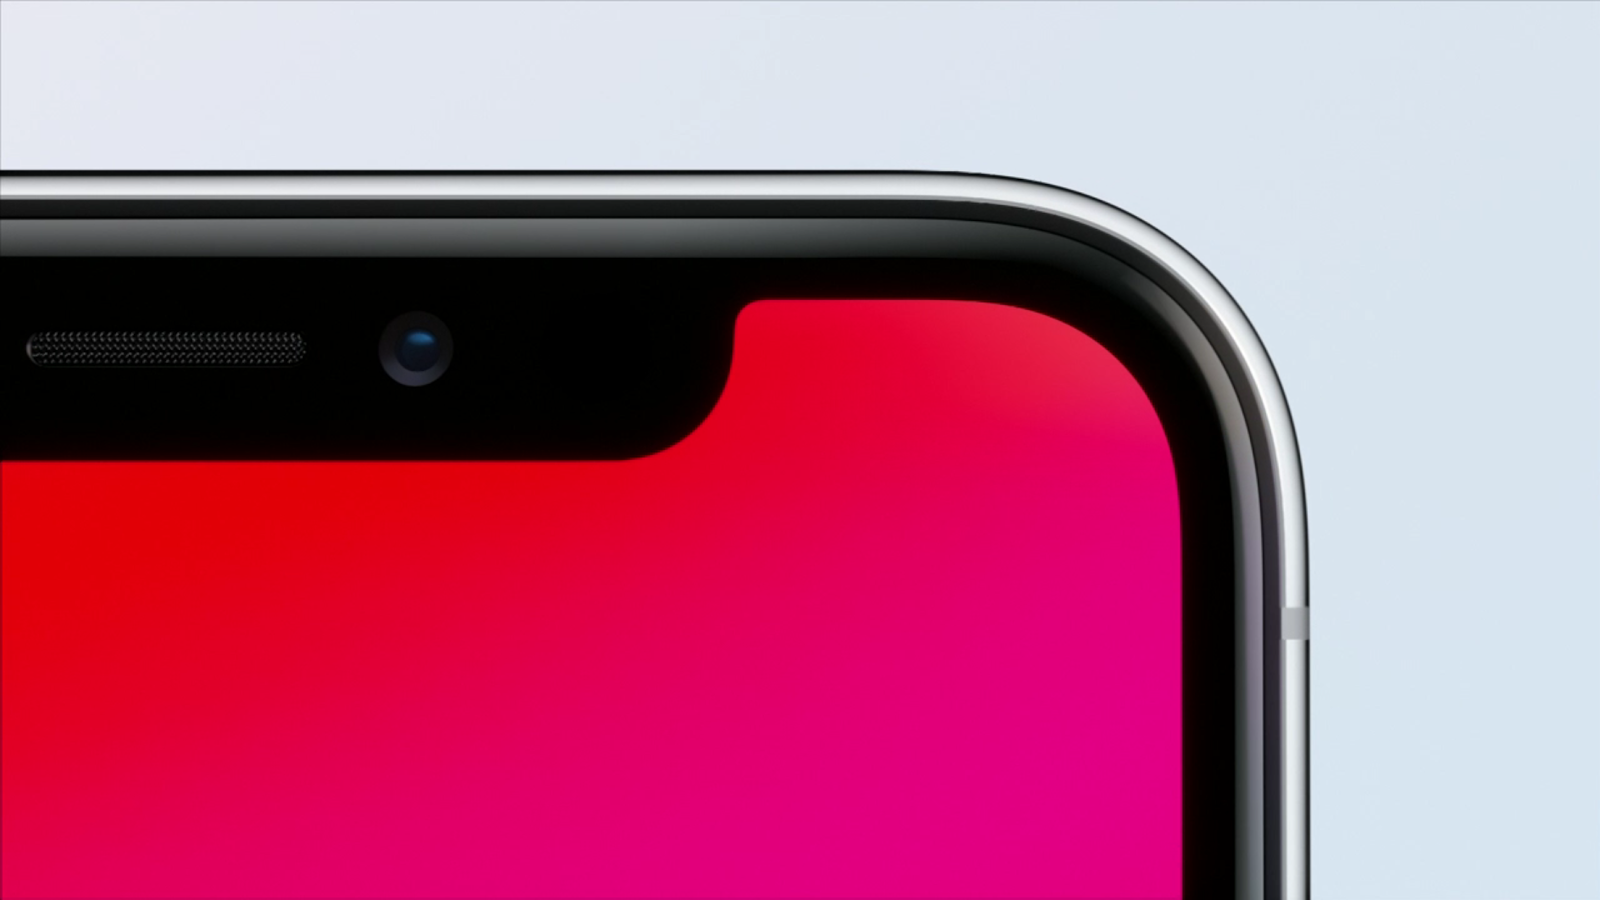 IMG_4142 Check out the Stunning iPhone X (iPhone 10) images Apple